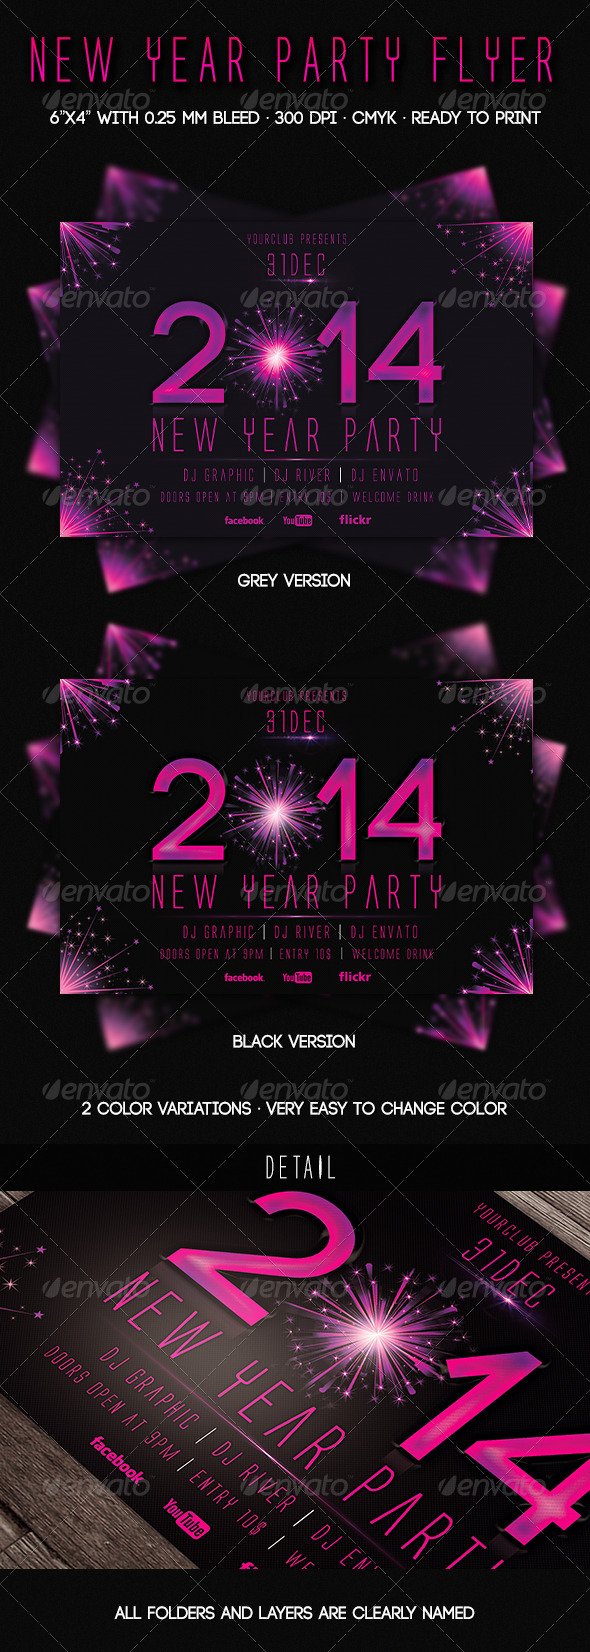 GraphicRiver 2014 New Year Party Flyer 6307945